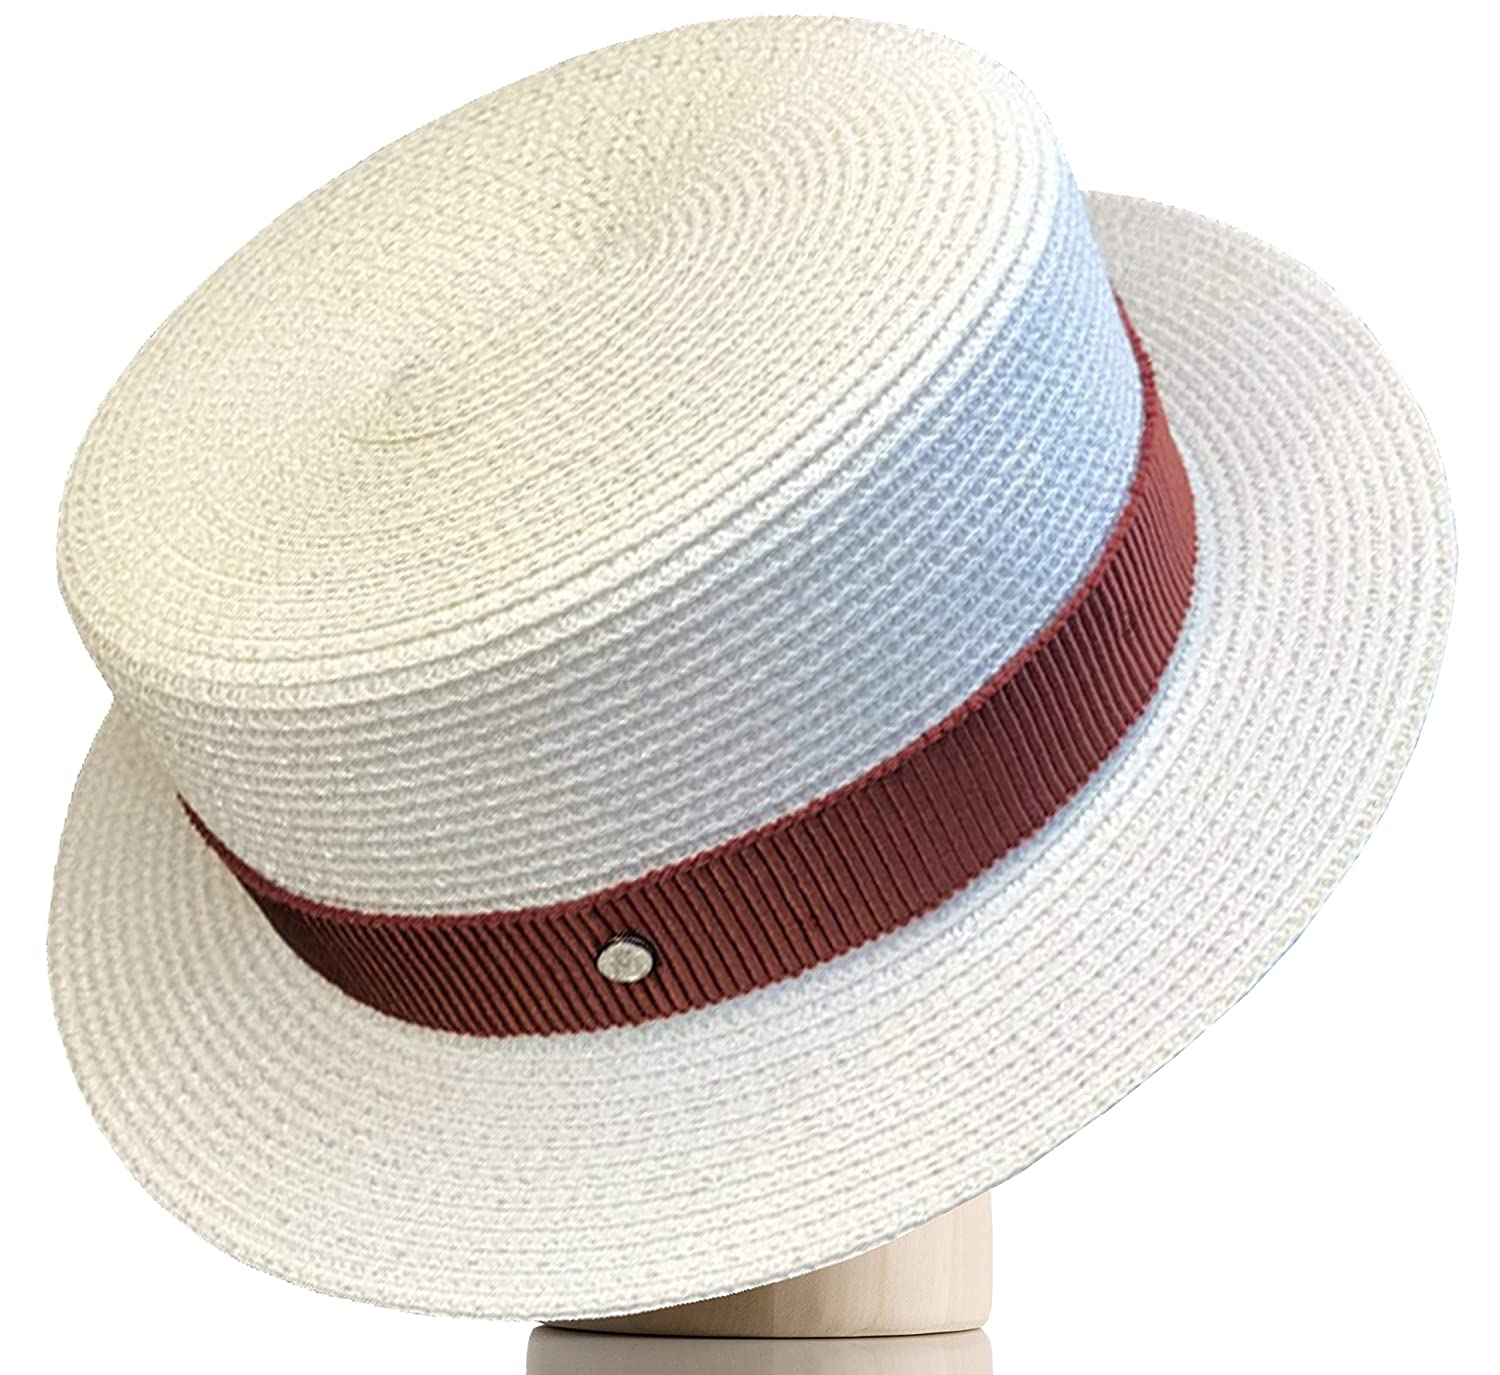 Women's Vintage Hats | Old Fashioned Hats | Retro Hats Melniko City Womens Straw Boater Hat Roaring 20s Retro Sunhat $22.98 AT vintagedancer.com